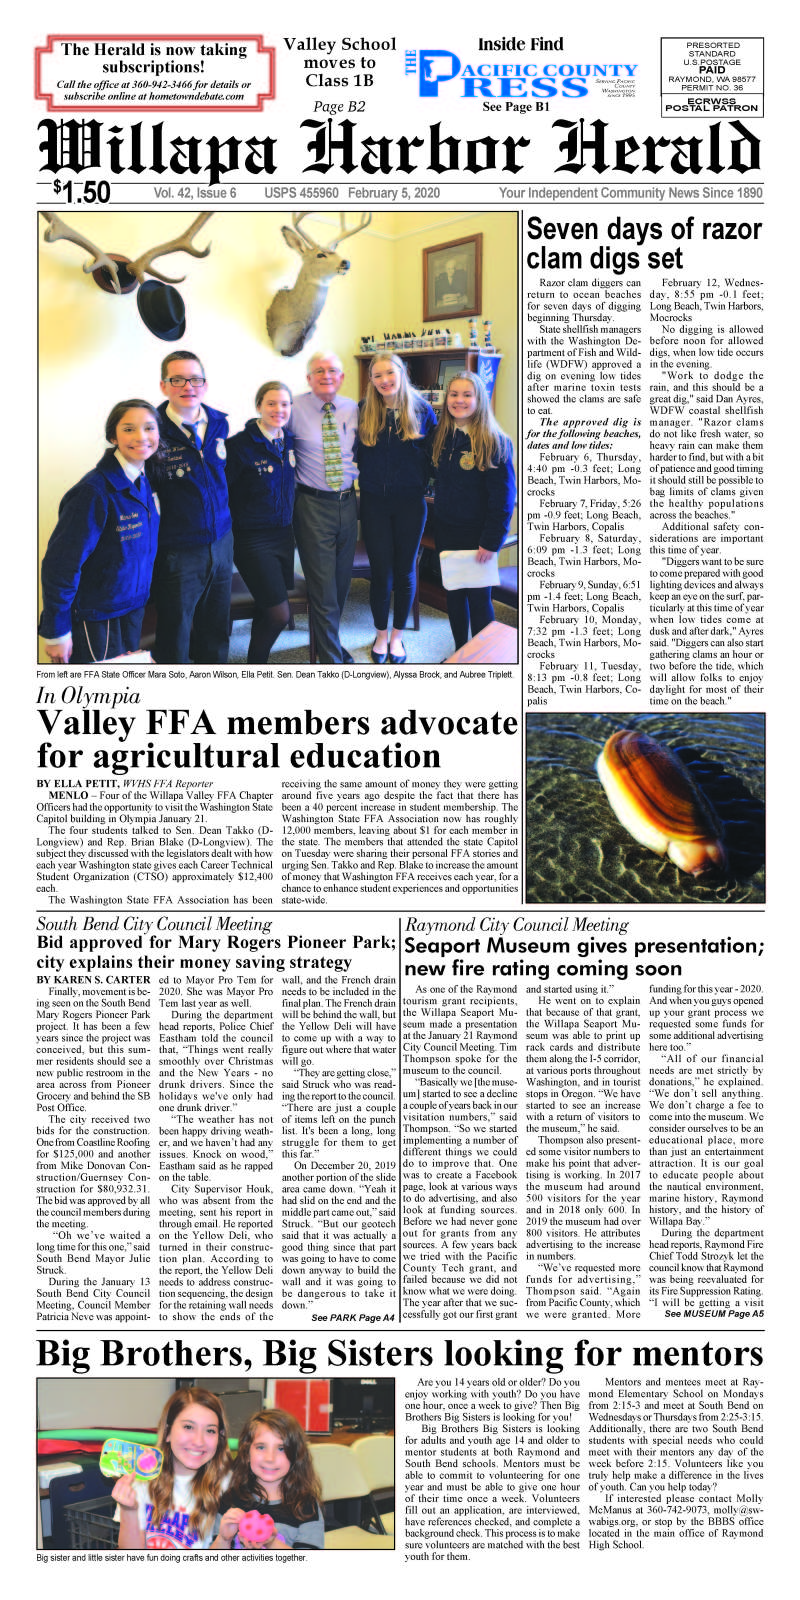 February 5, 2020 Willapa Harbor Herald and Pacific County Press